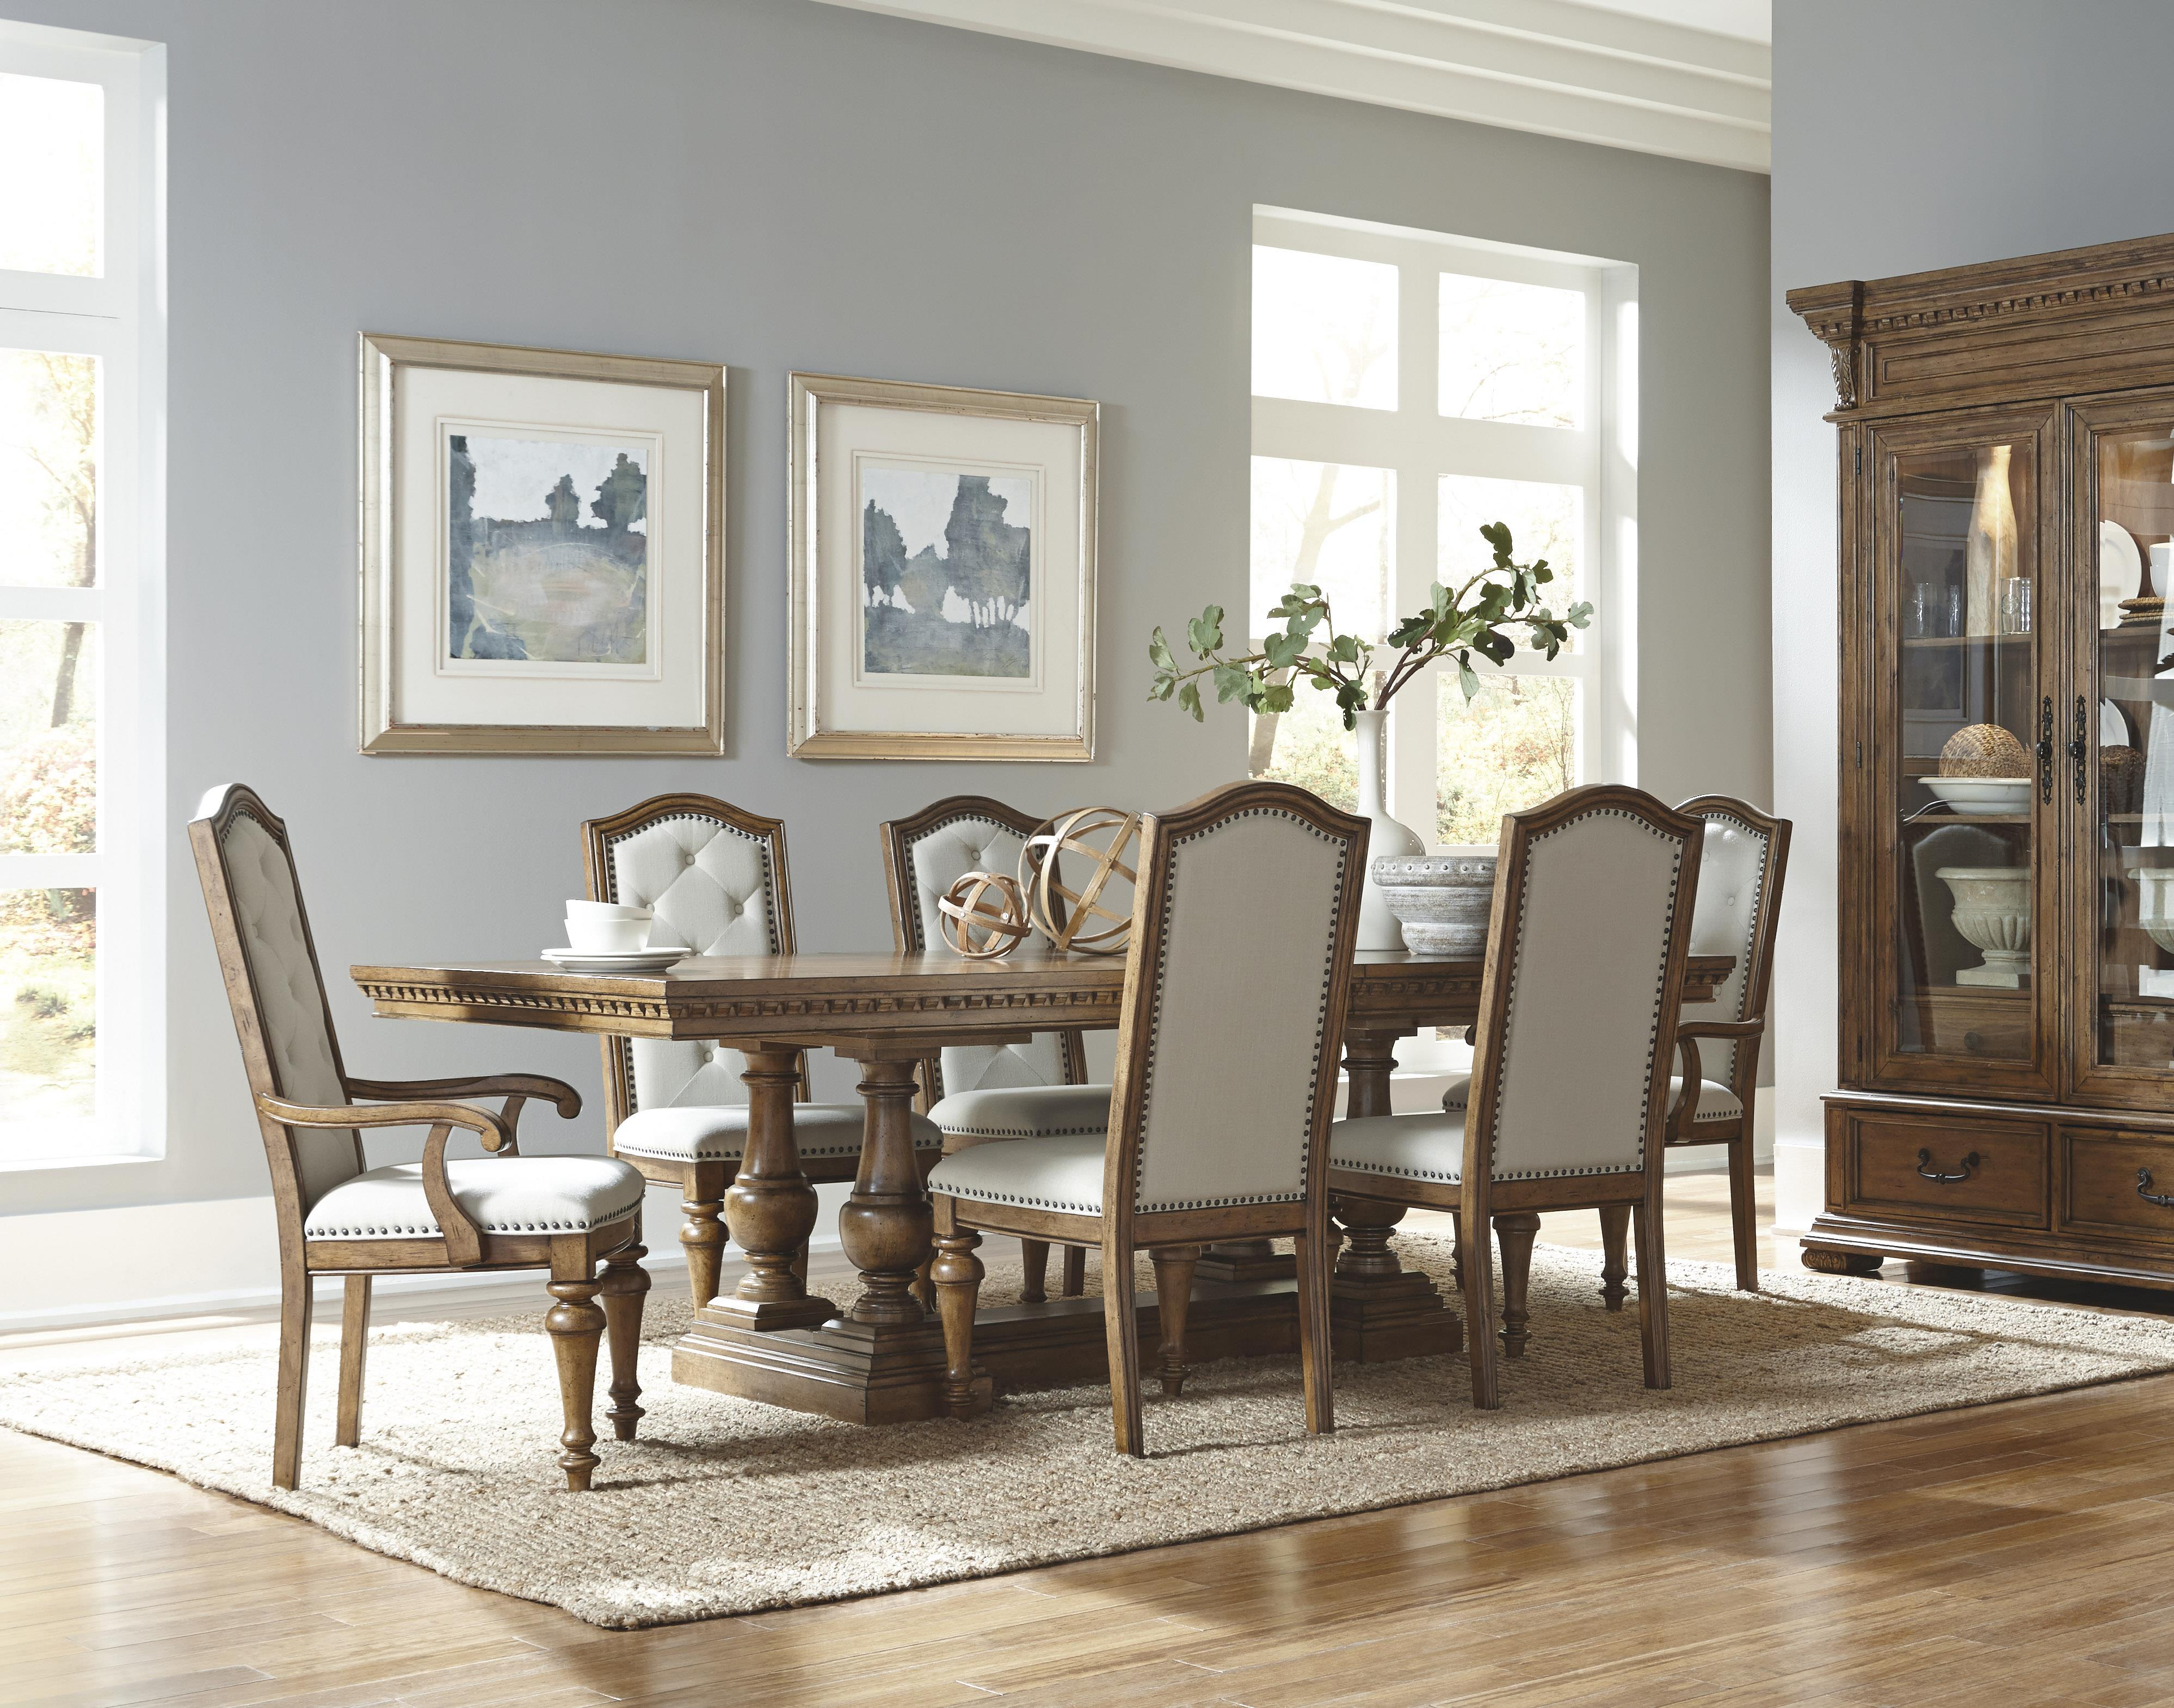 Pulaski Furniture Stratton Formal Dining Room Group Royal Furniture Forma